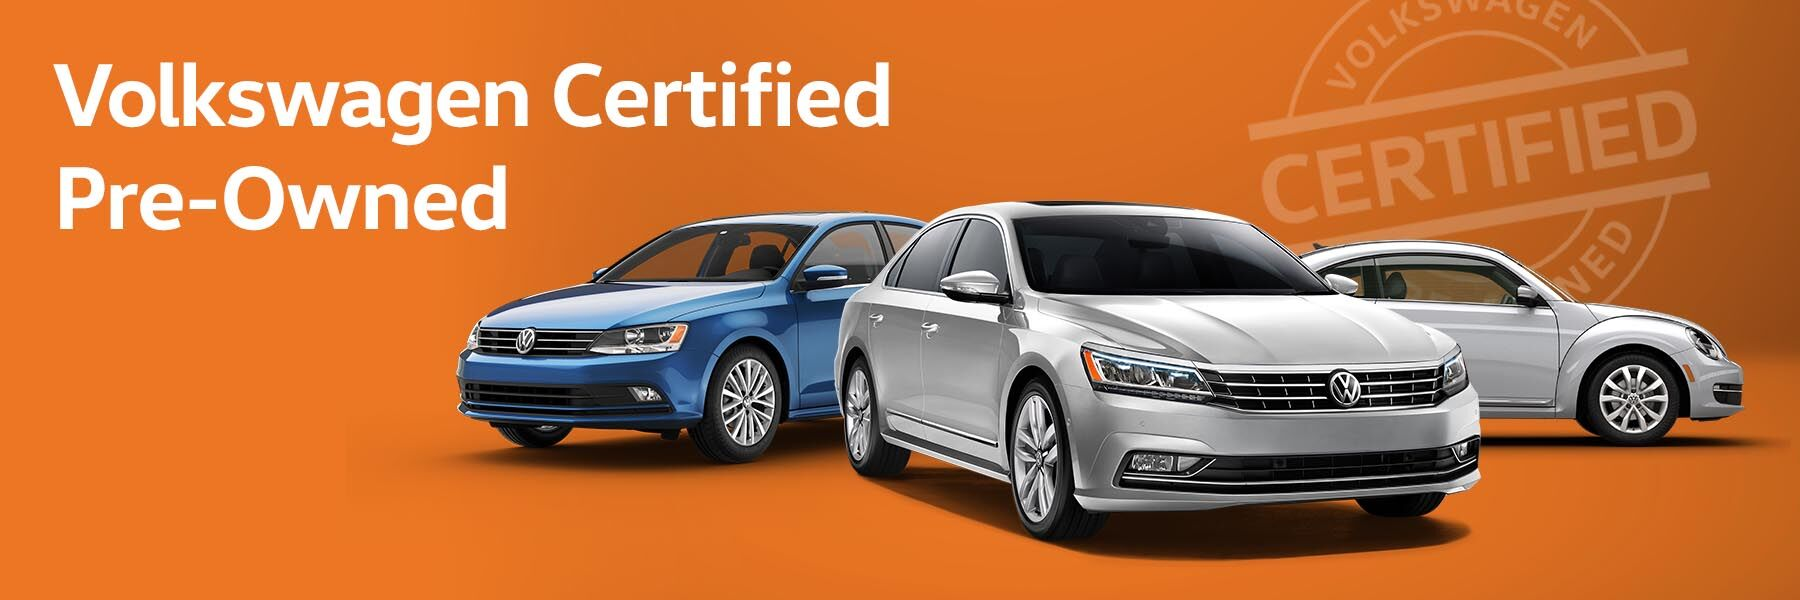 Volkswagen Certified Pre-Owned in National City, CA